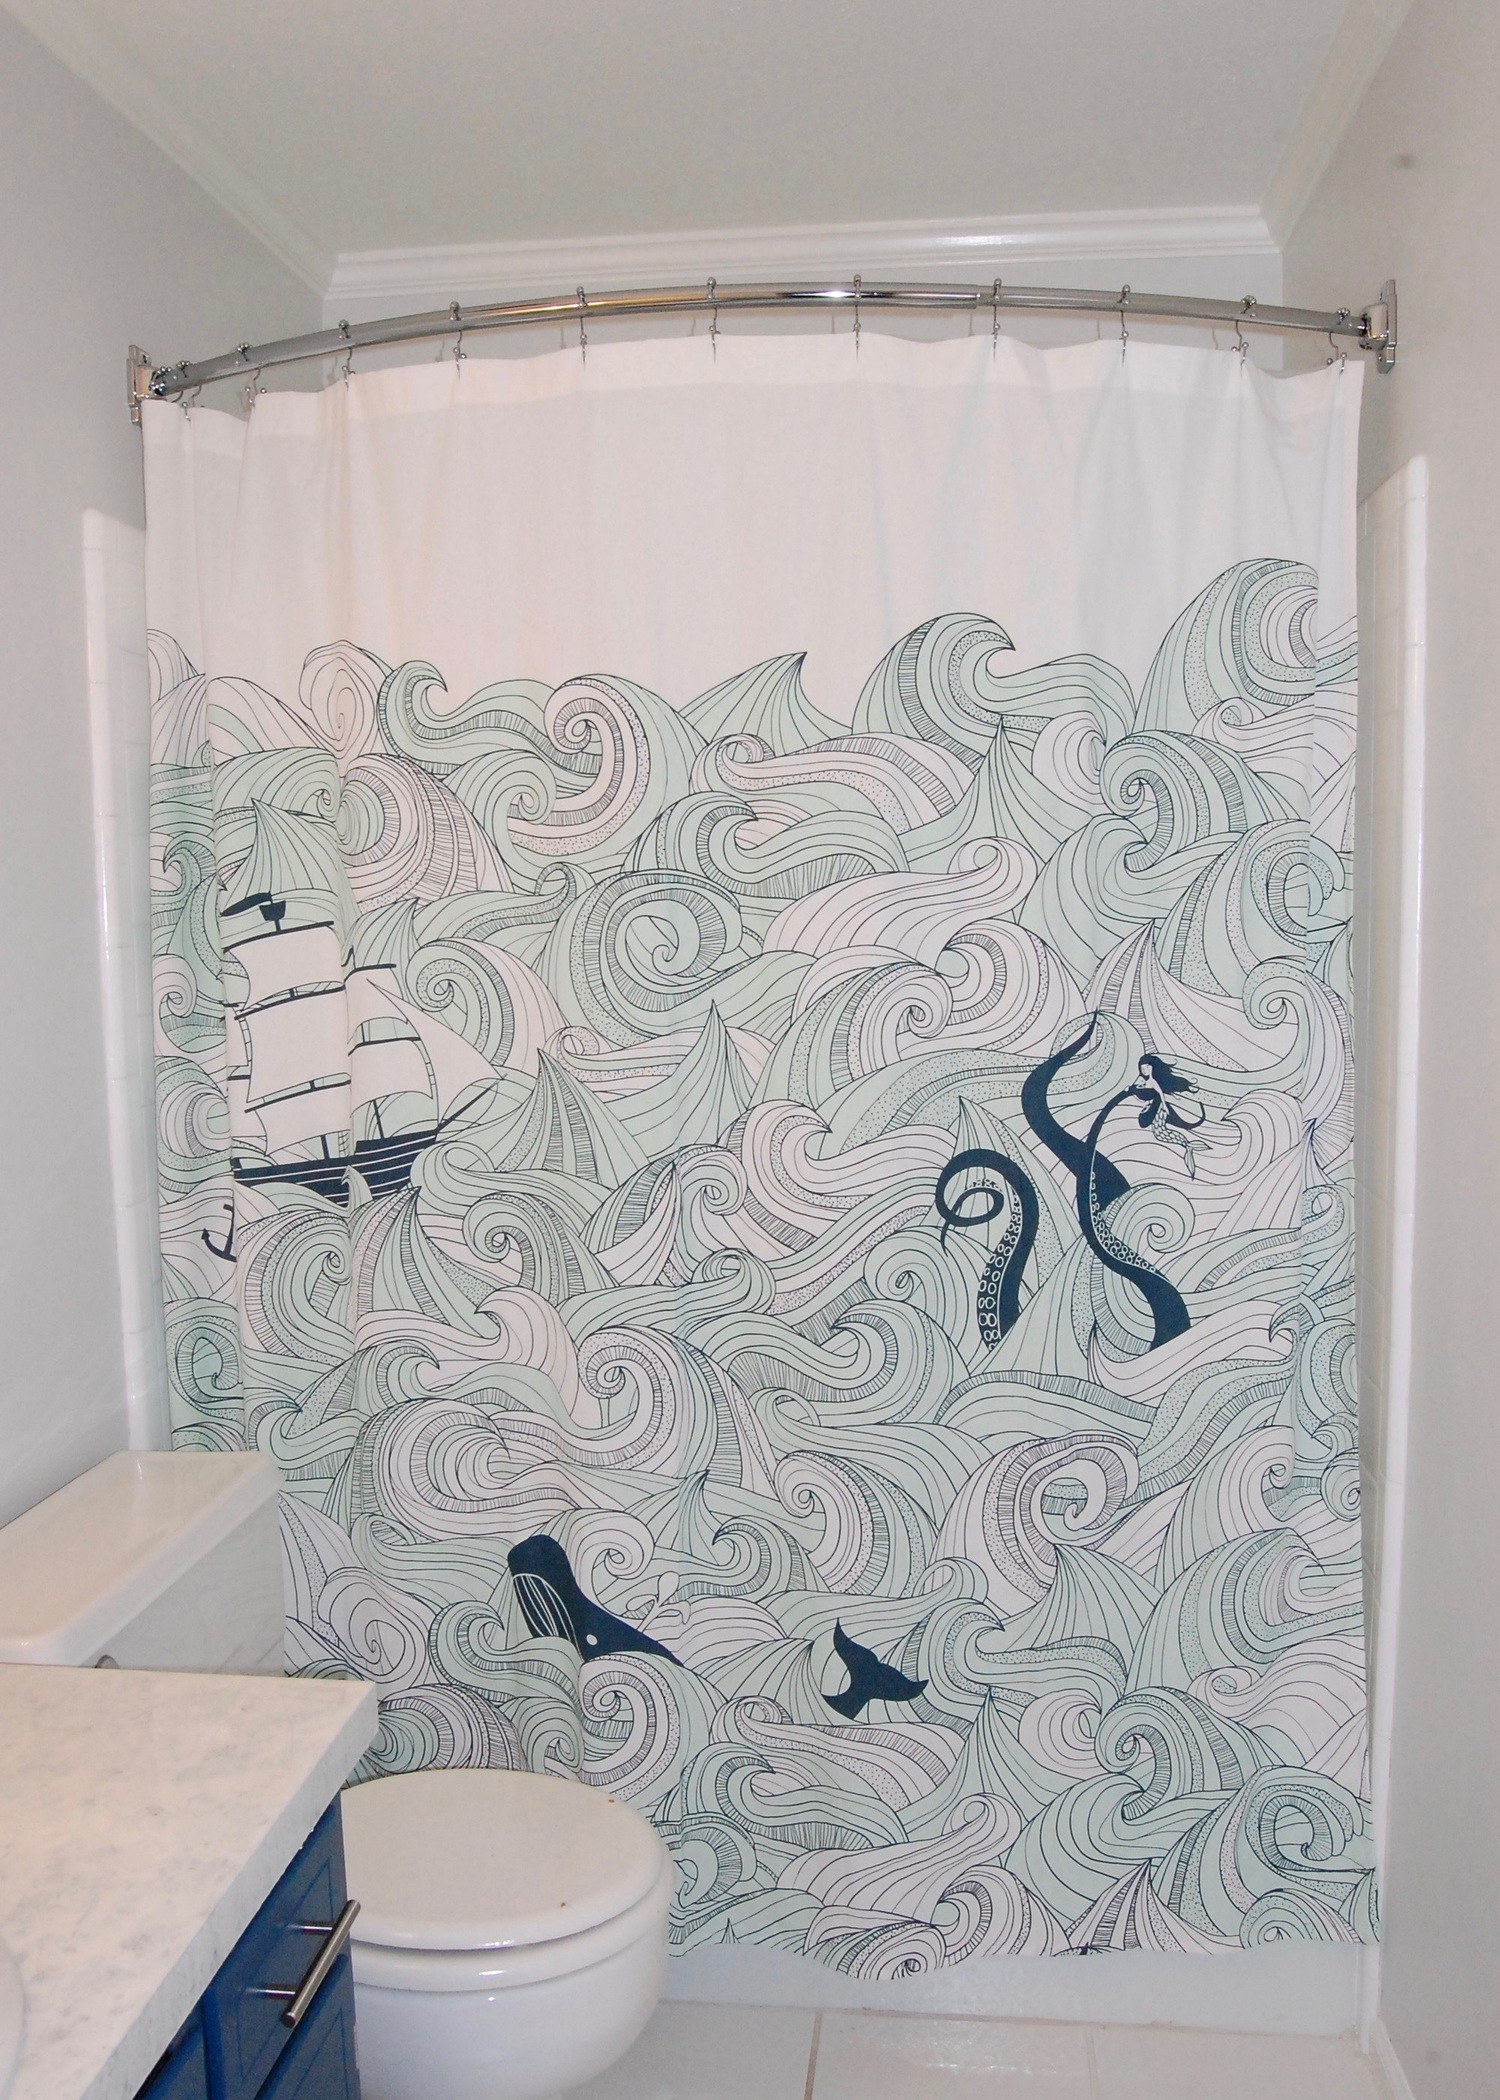 At What Height Should A Shower Curtain Be Installed Gerwerken Crafts